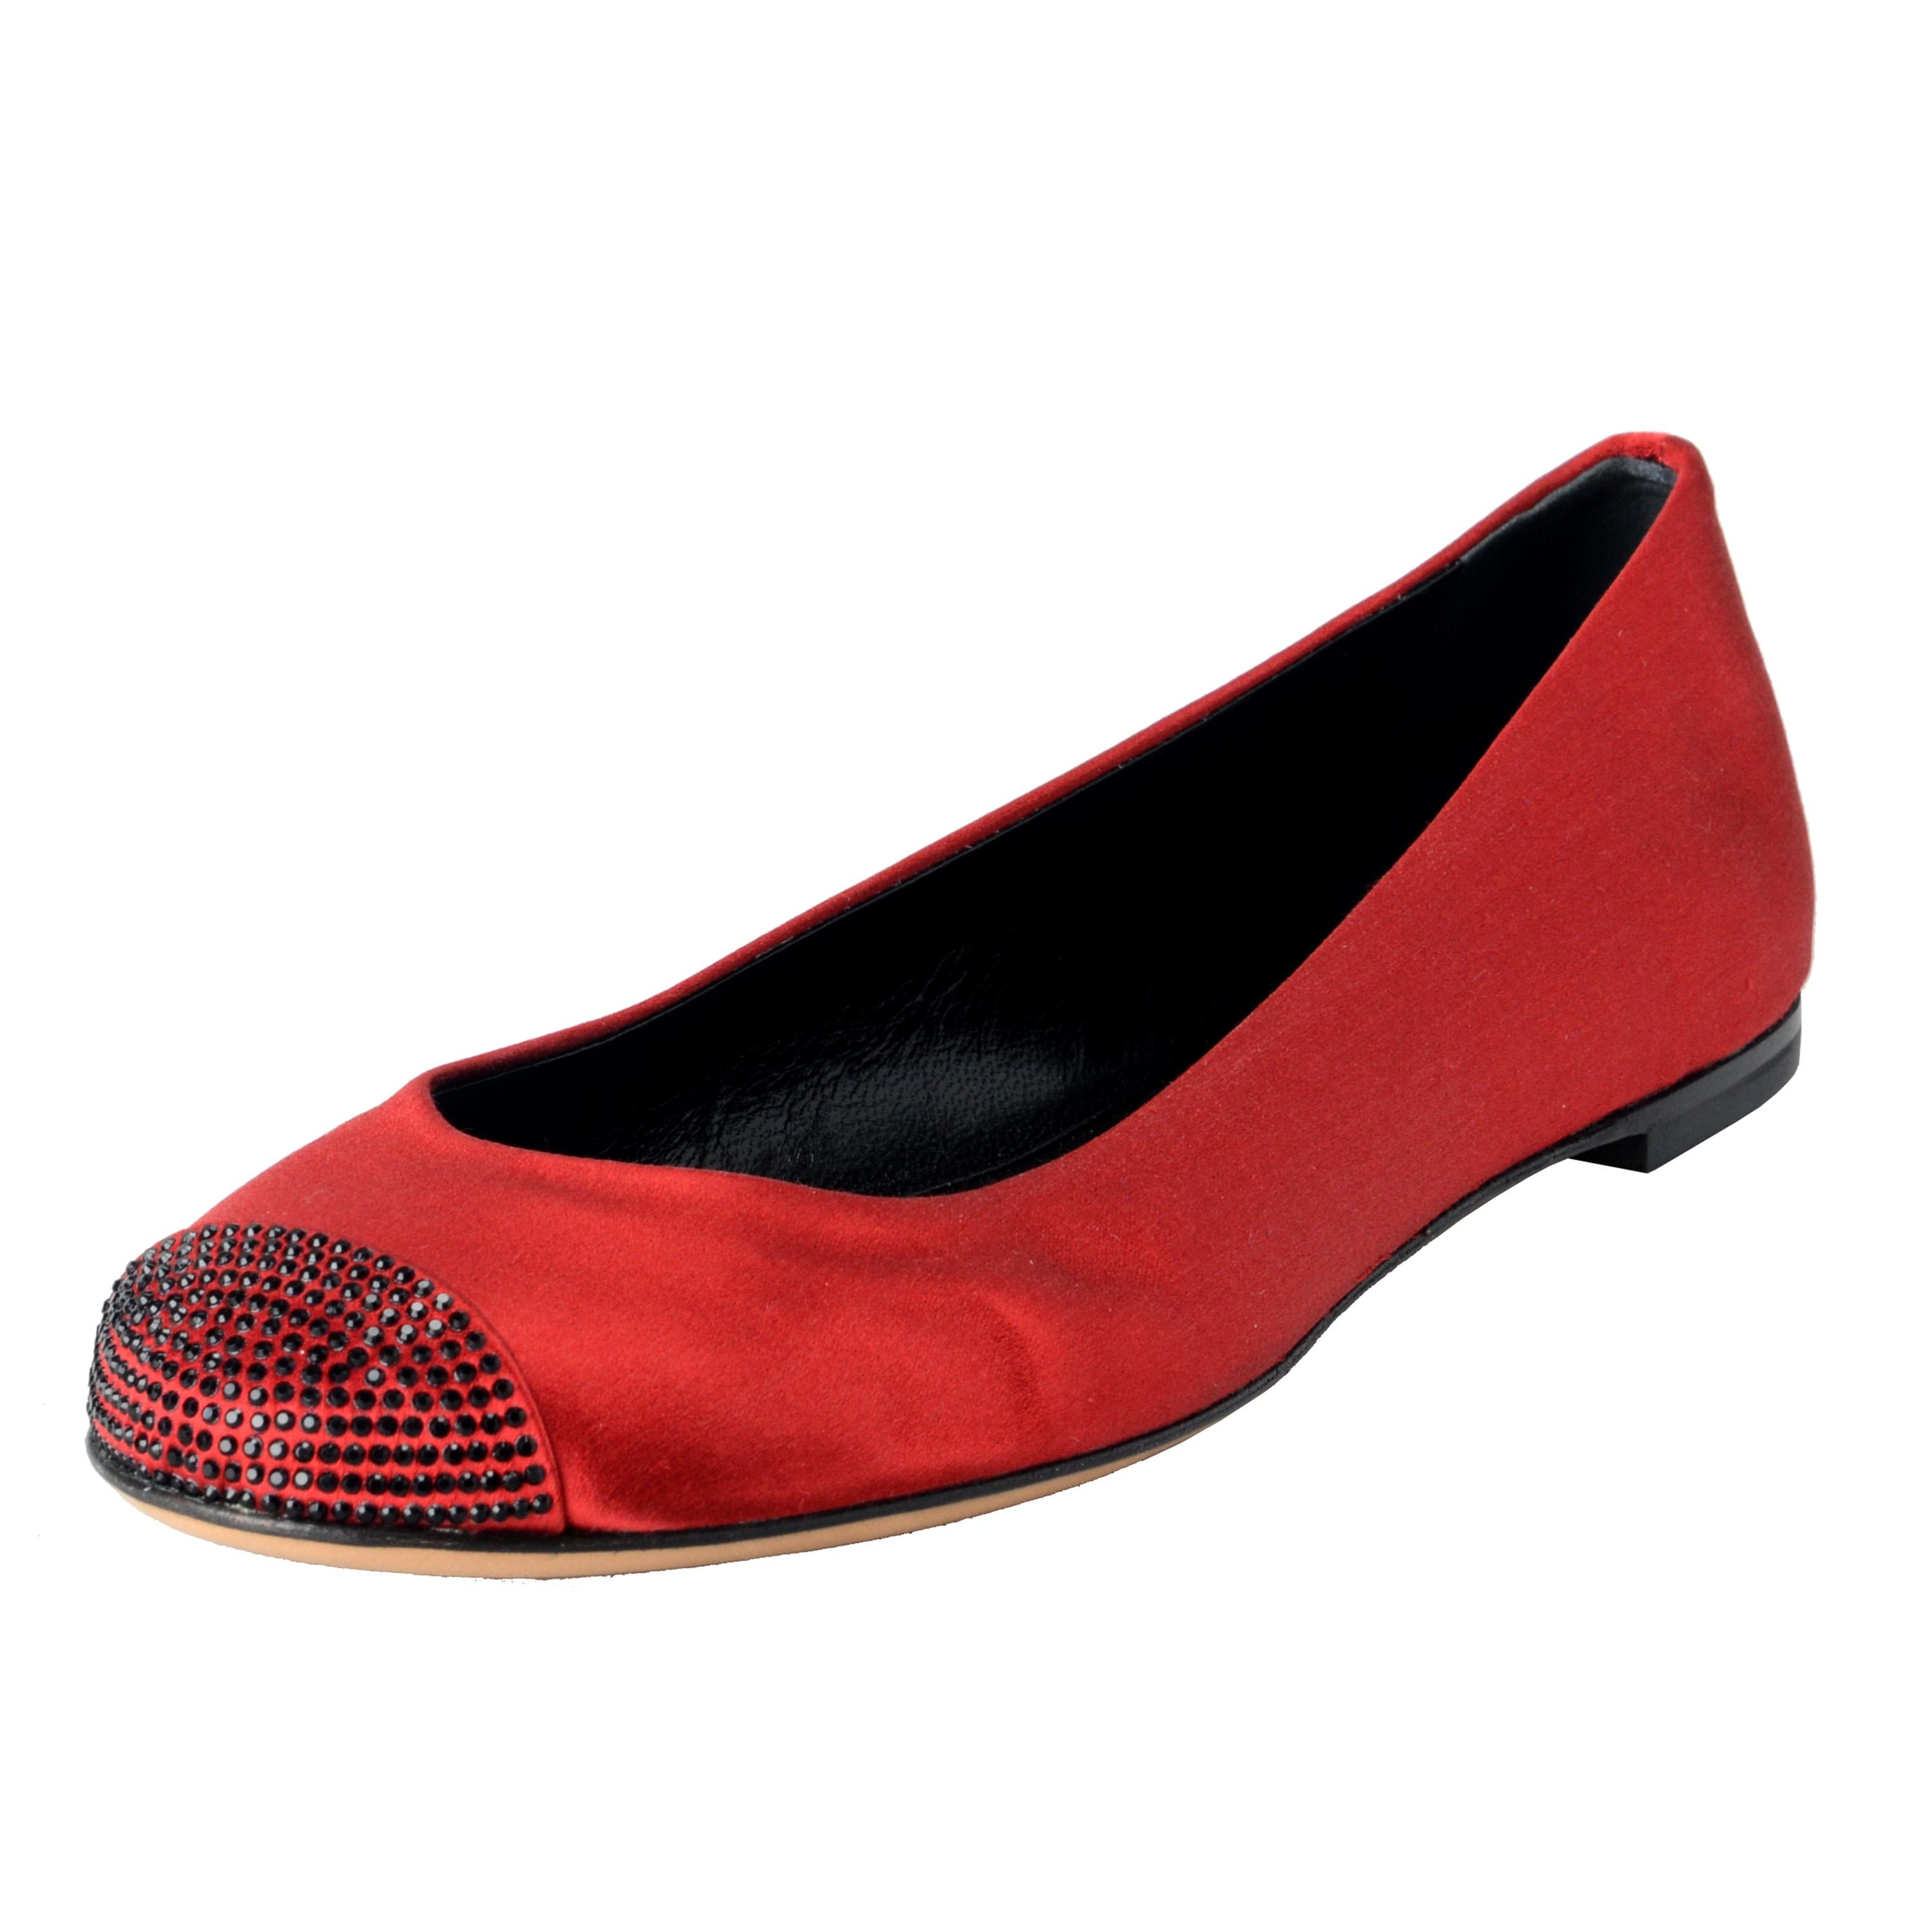 Cheap Comfortable Marketable Sale Online Giuseppe Zanotti Leather Ballet Flats Huge Surprise Outlet In China AF05edN9w